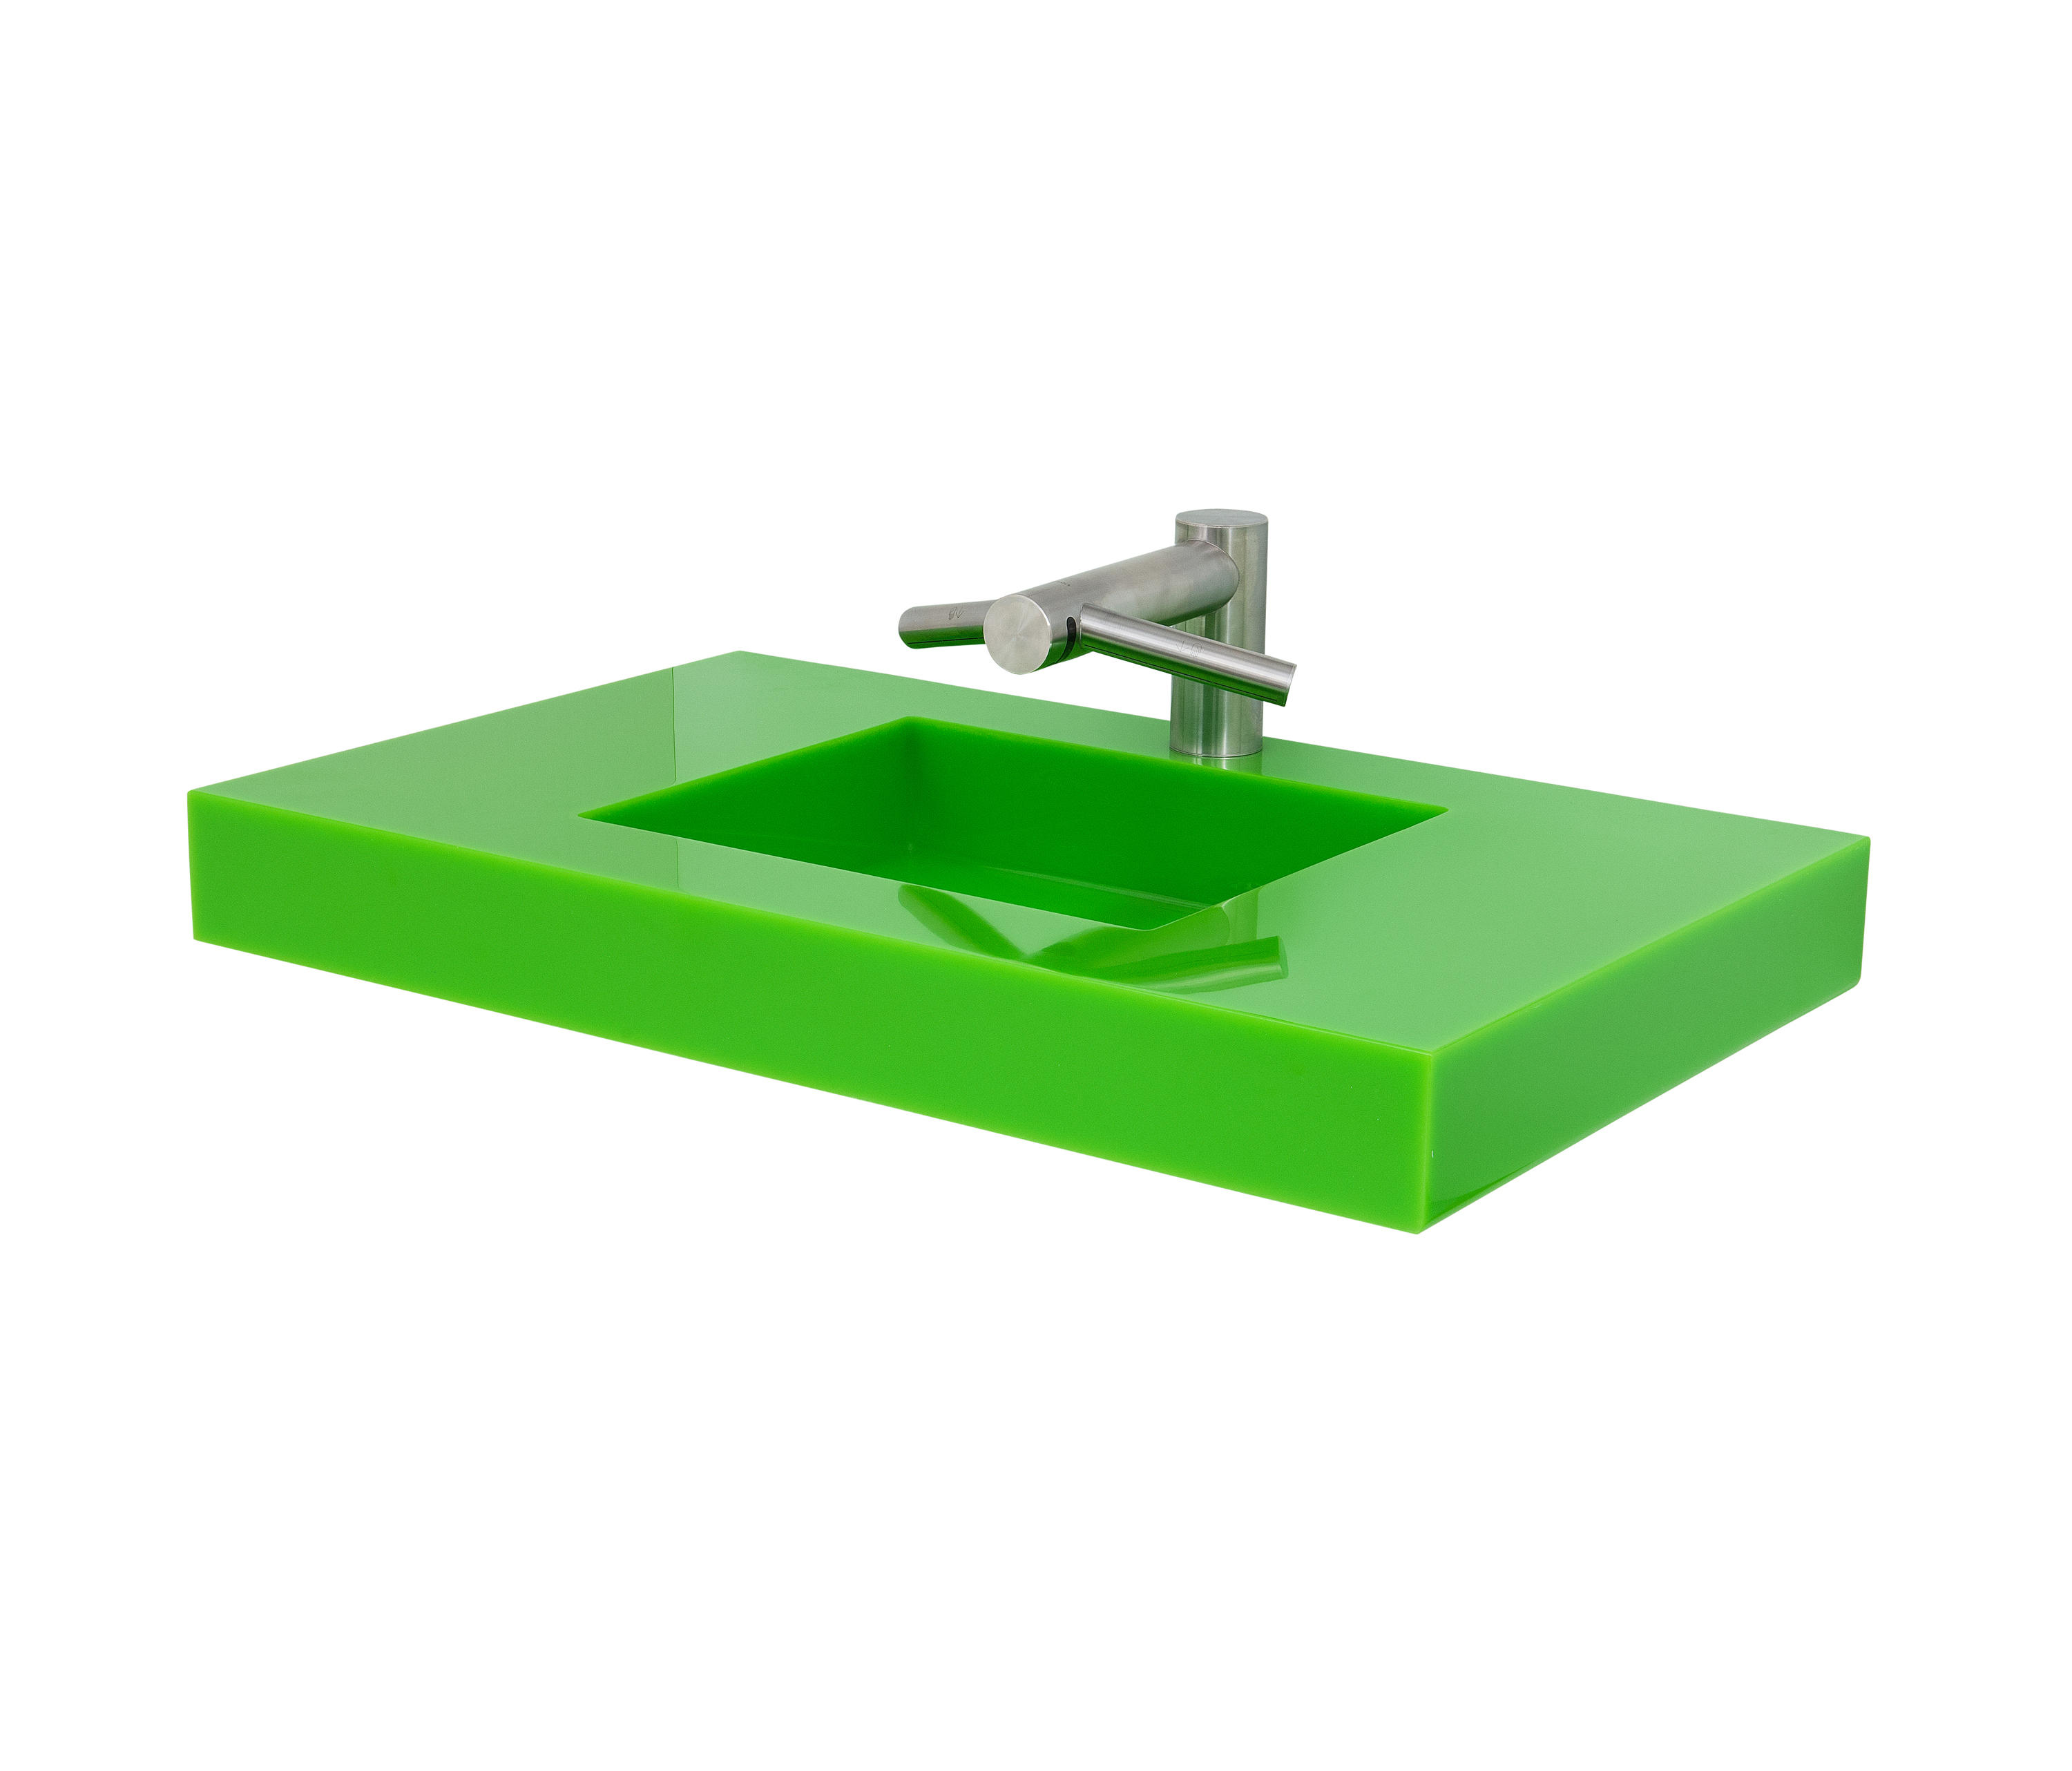 SLAB WALL MOUNTED CAST SOLID SURFACE DECK - Wash basins from Neo ...